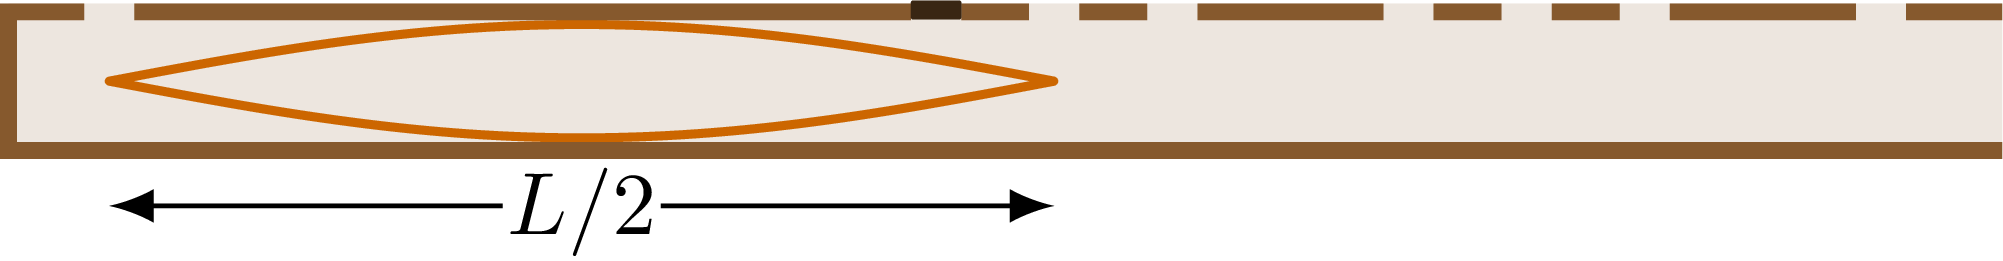 waves_standing_flute-006.png